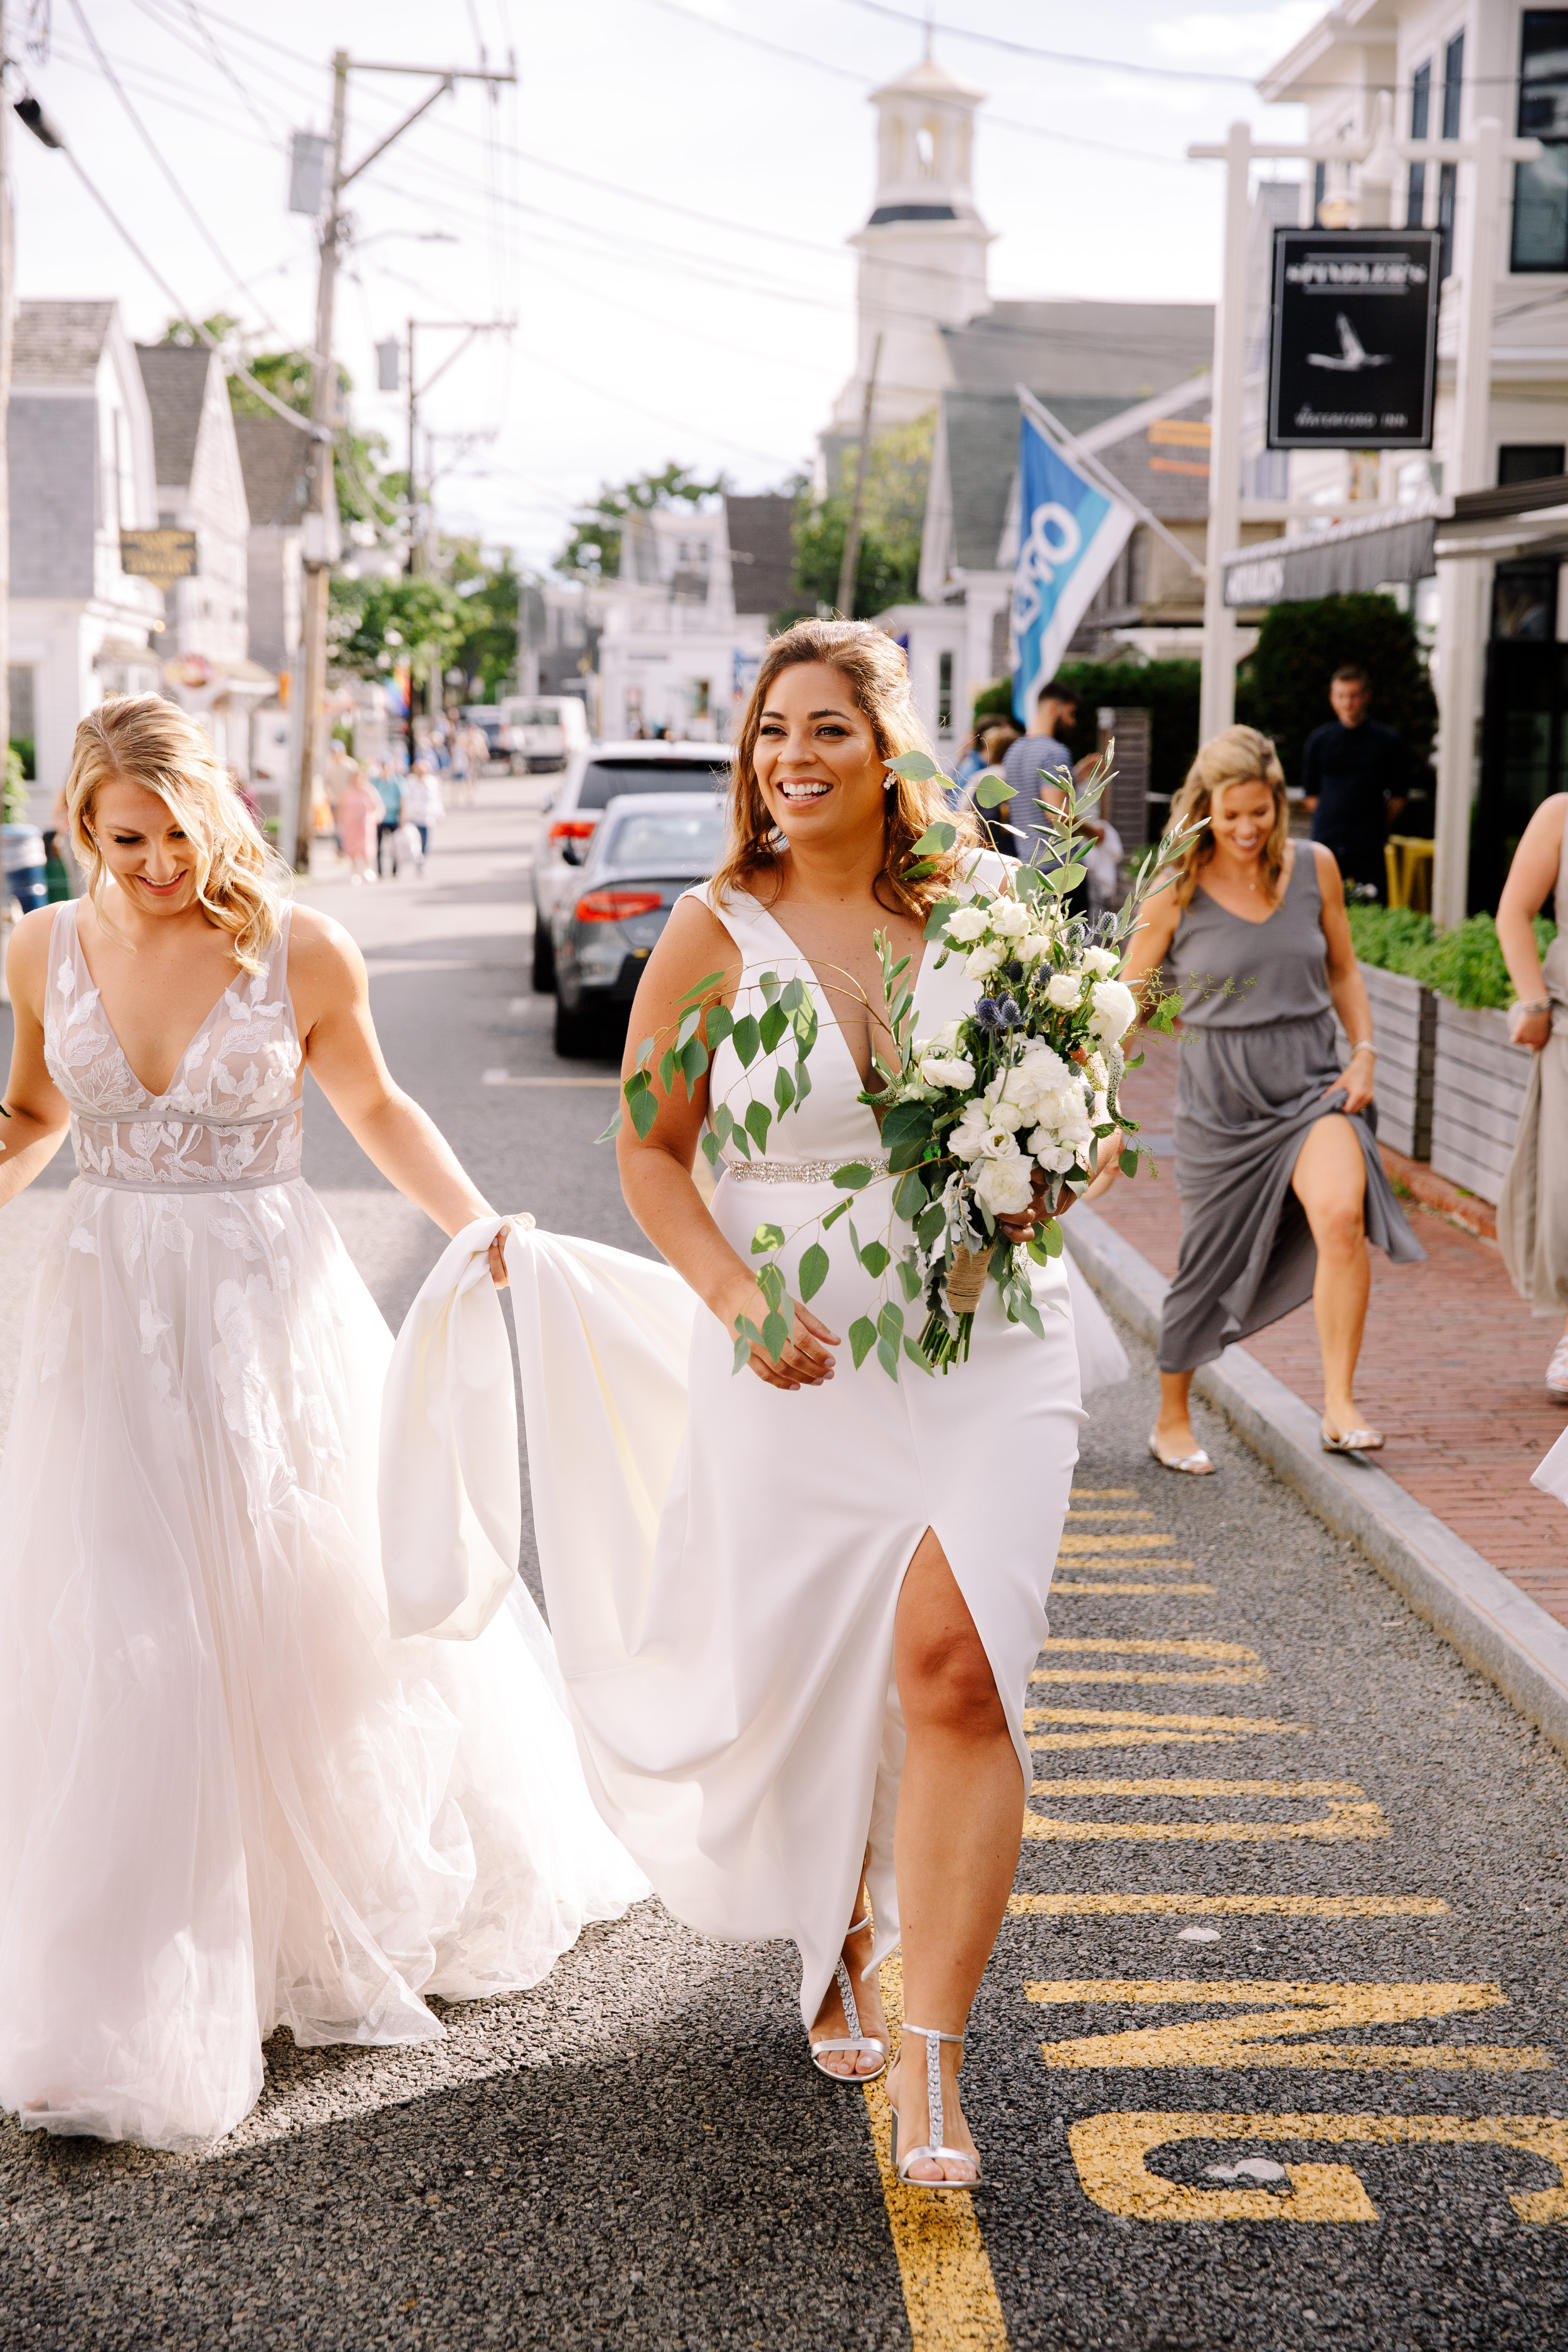 two same-sex brides in wedding dresses walking in downtown providence luxury weddingplanning